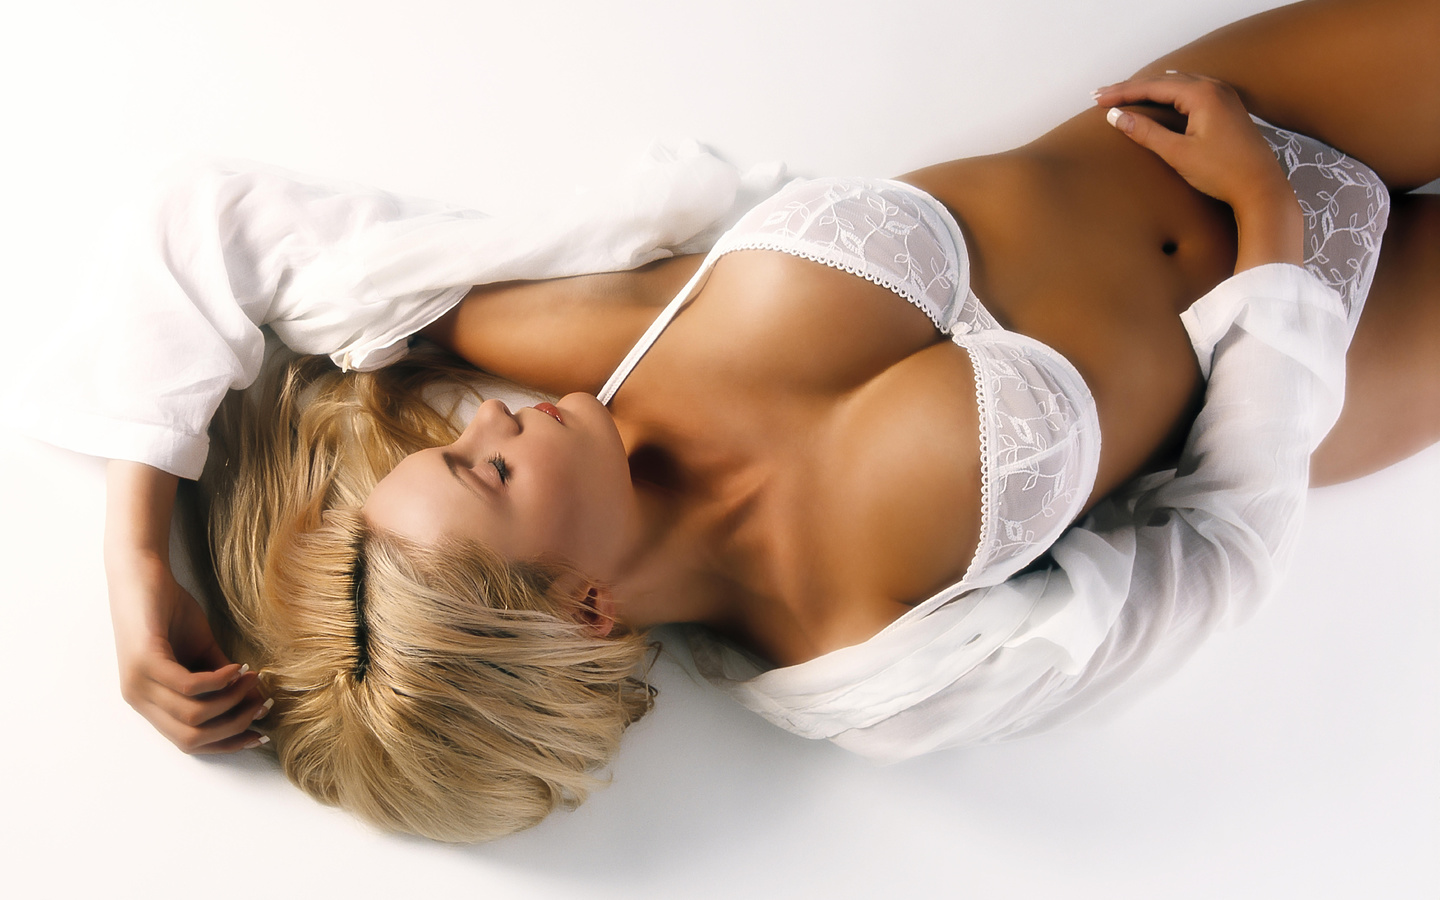 pictures-girls-hot